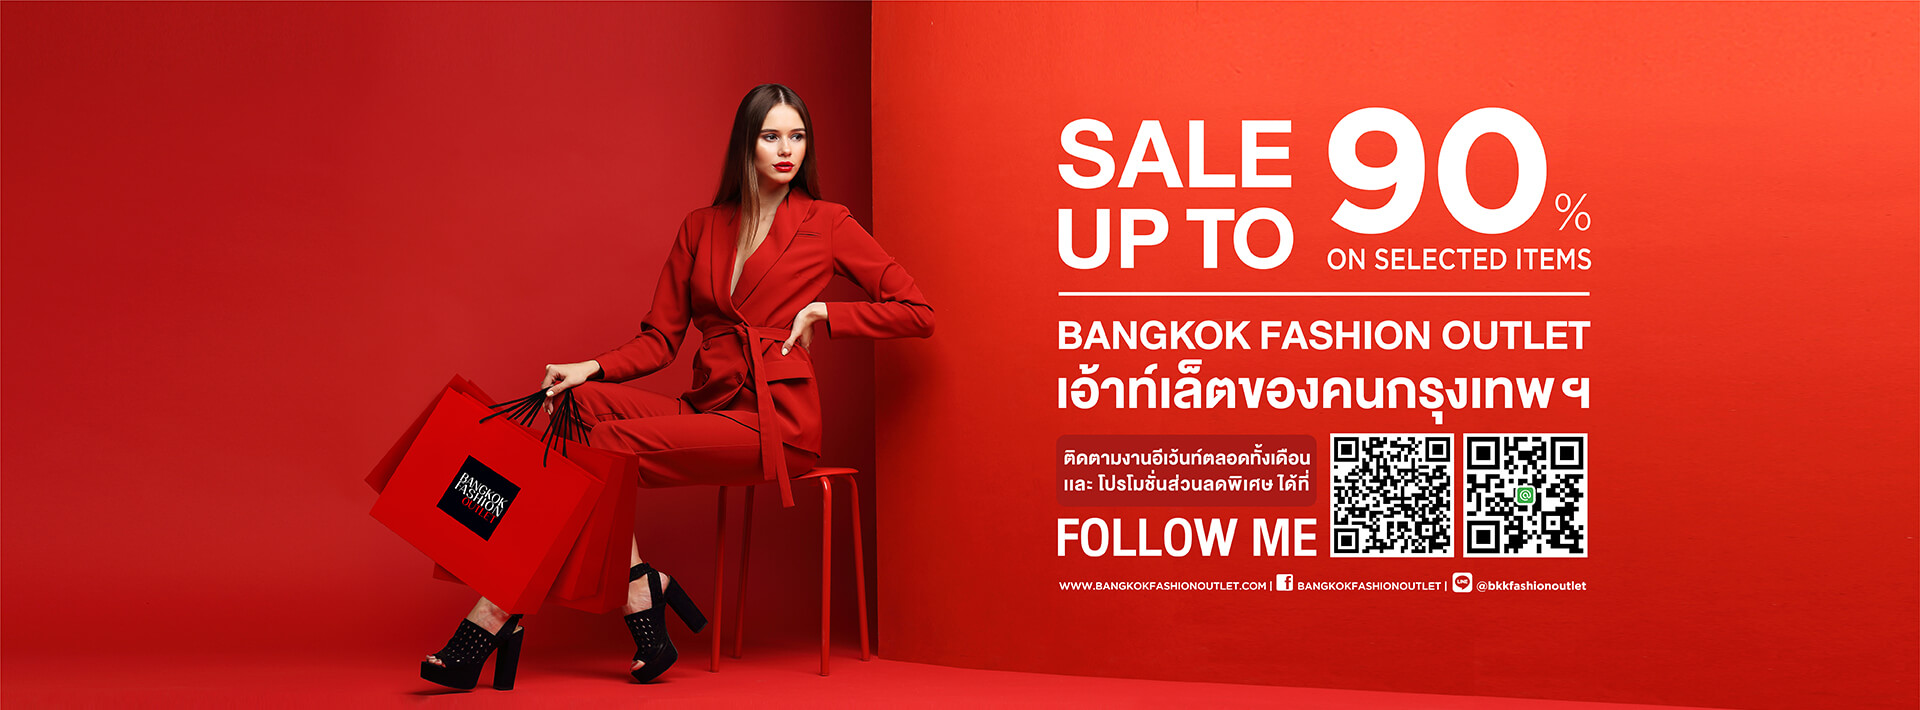 Welcome to Bangkok Fashion Outlet